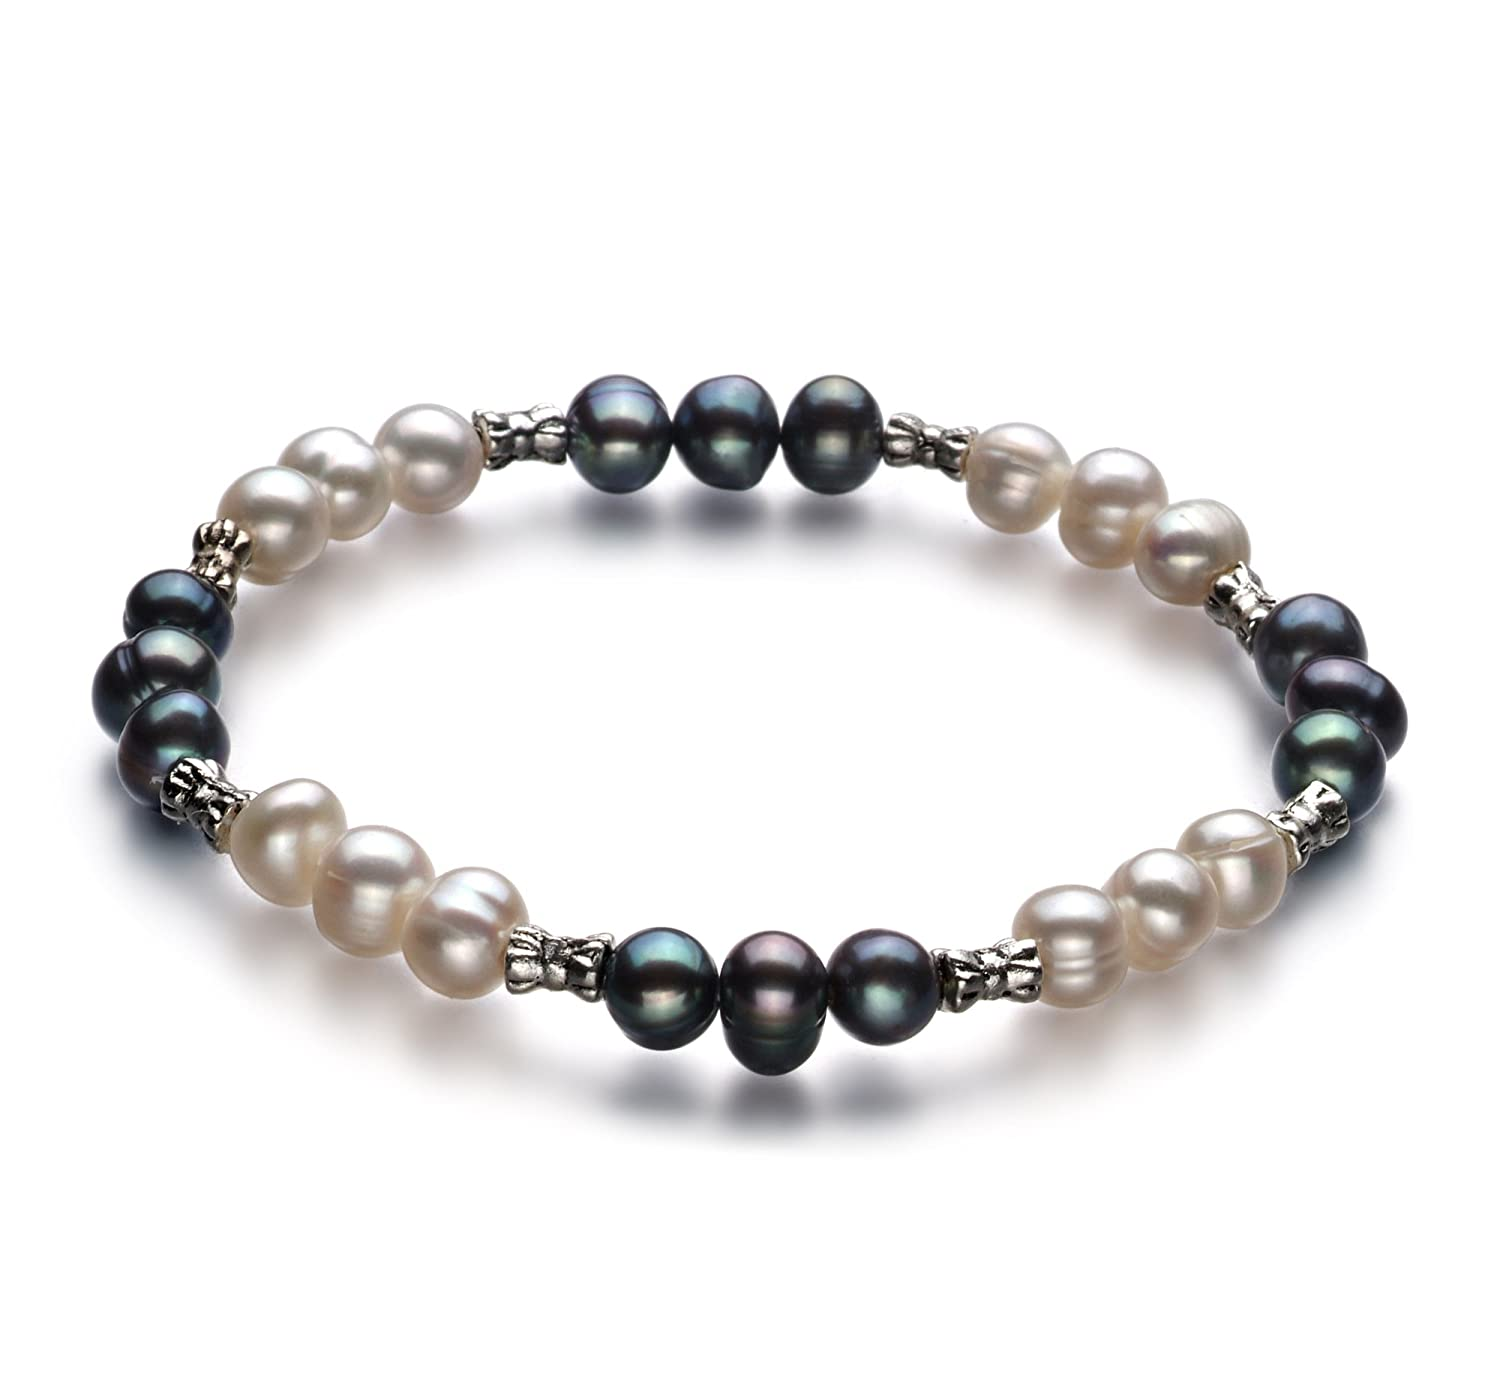 PearlsOnly YinYang Black and White 6.0-6.5mm A Freshwater Cultured Pearl Bracelet-7.5-inch